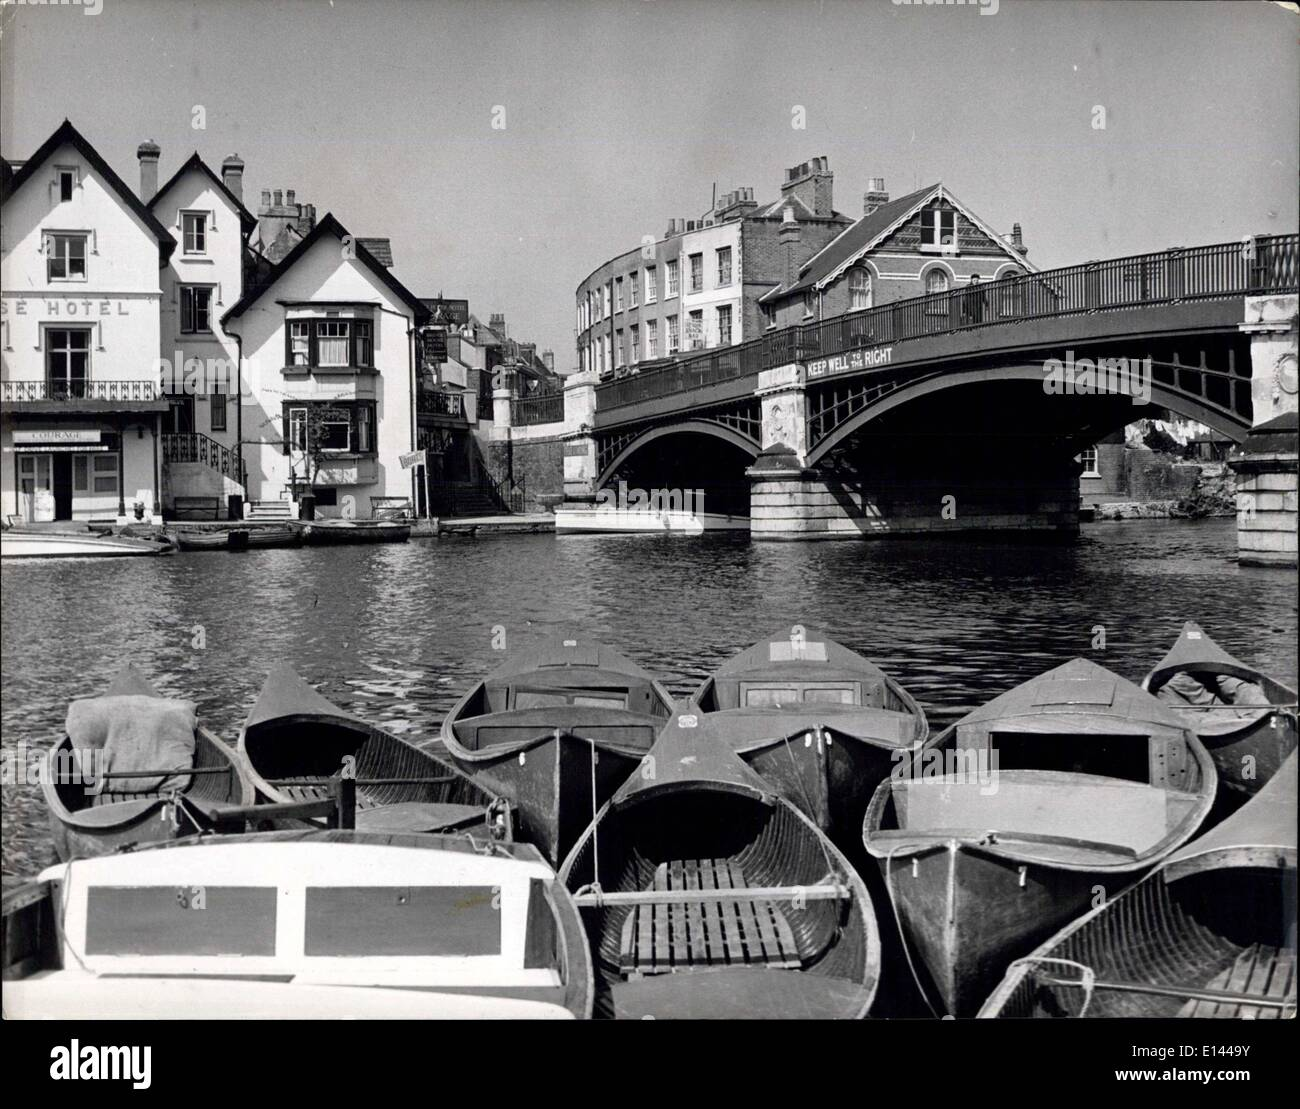 Apr. 04, 2012 - Windsor Bridge spanning the Thames and looking towards Eton, with punts and small boats in the foreground ready - Stock Image